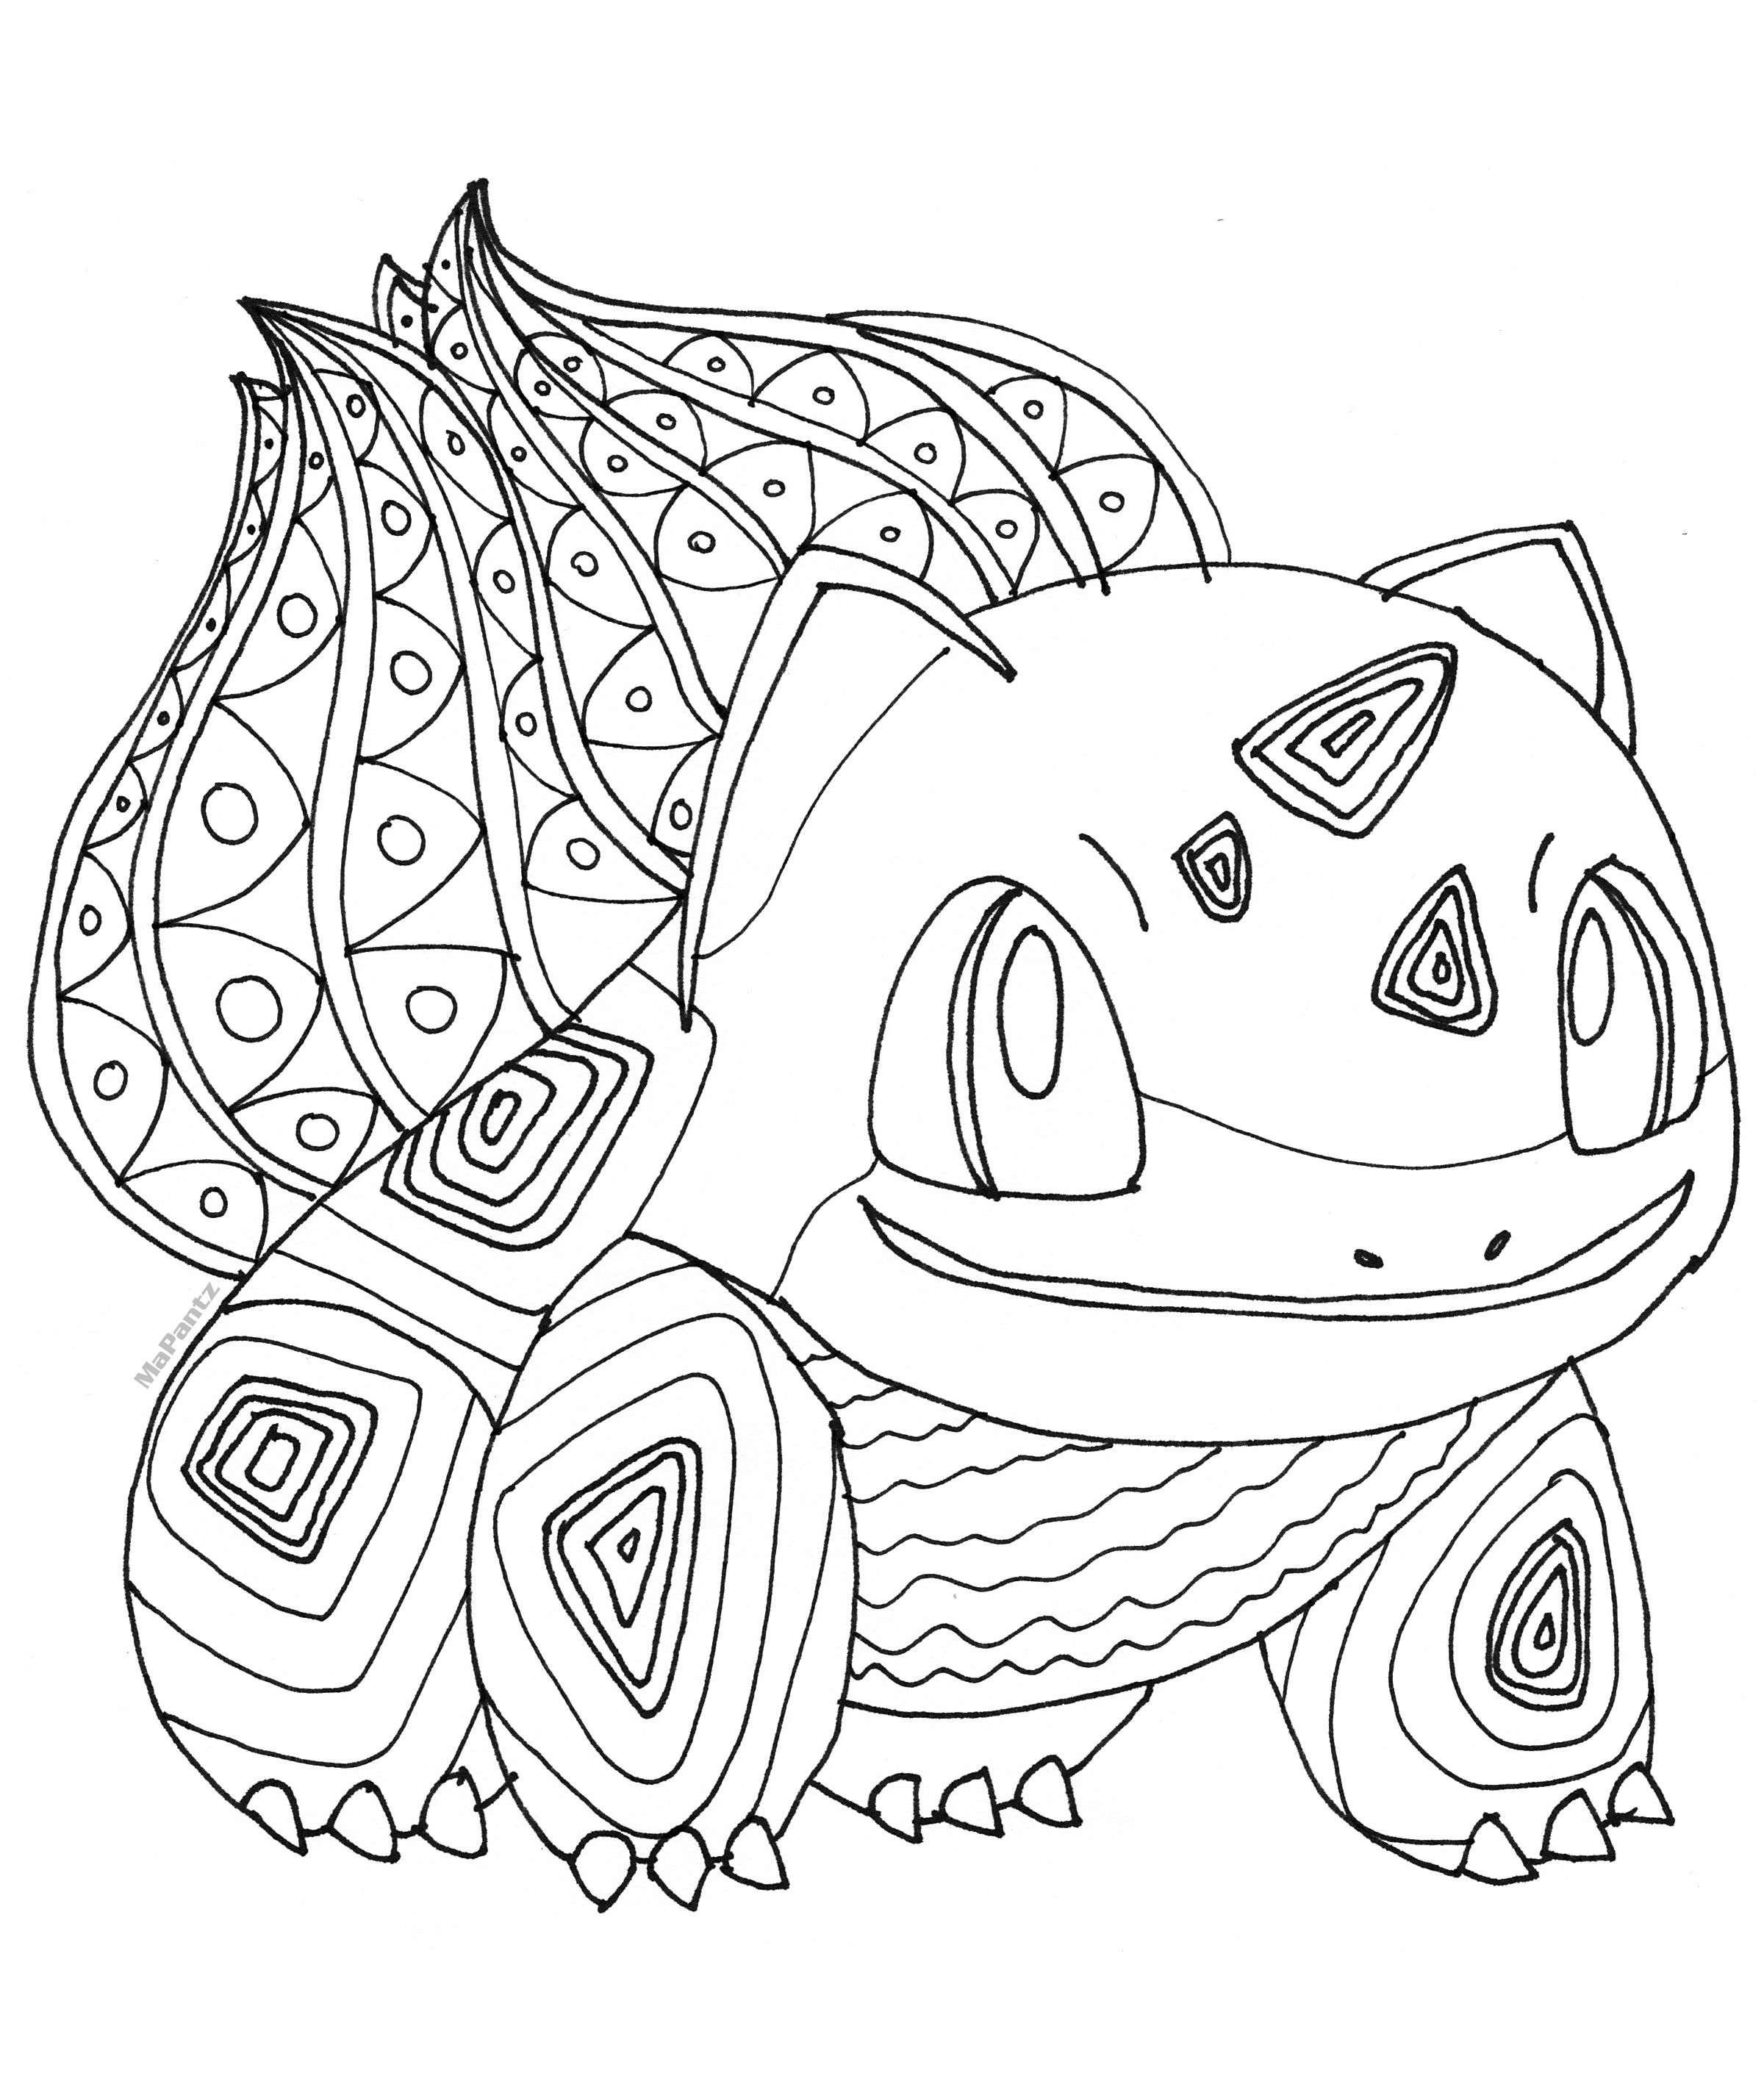 Pokemon Bulbasaur Free Coloring Page By Mapantz Pokemon Coloring Pokemon Coloring Sheets Coloring Pages